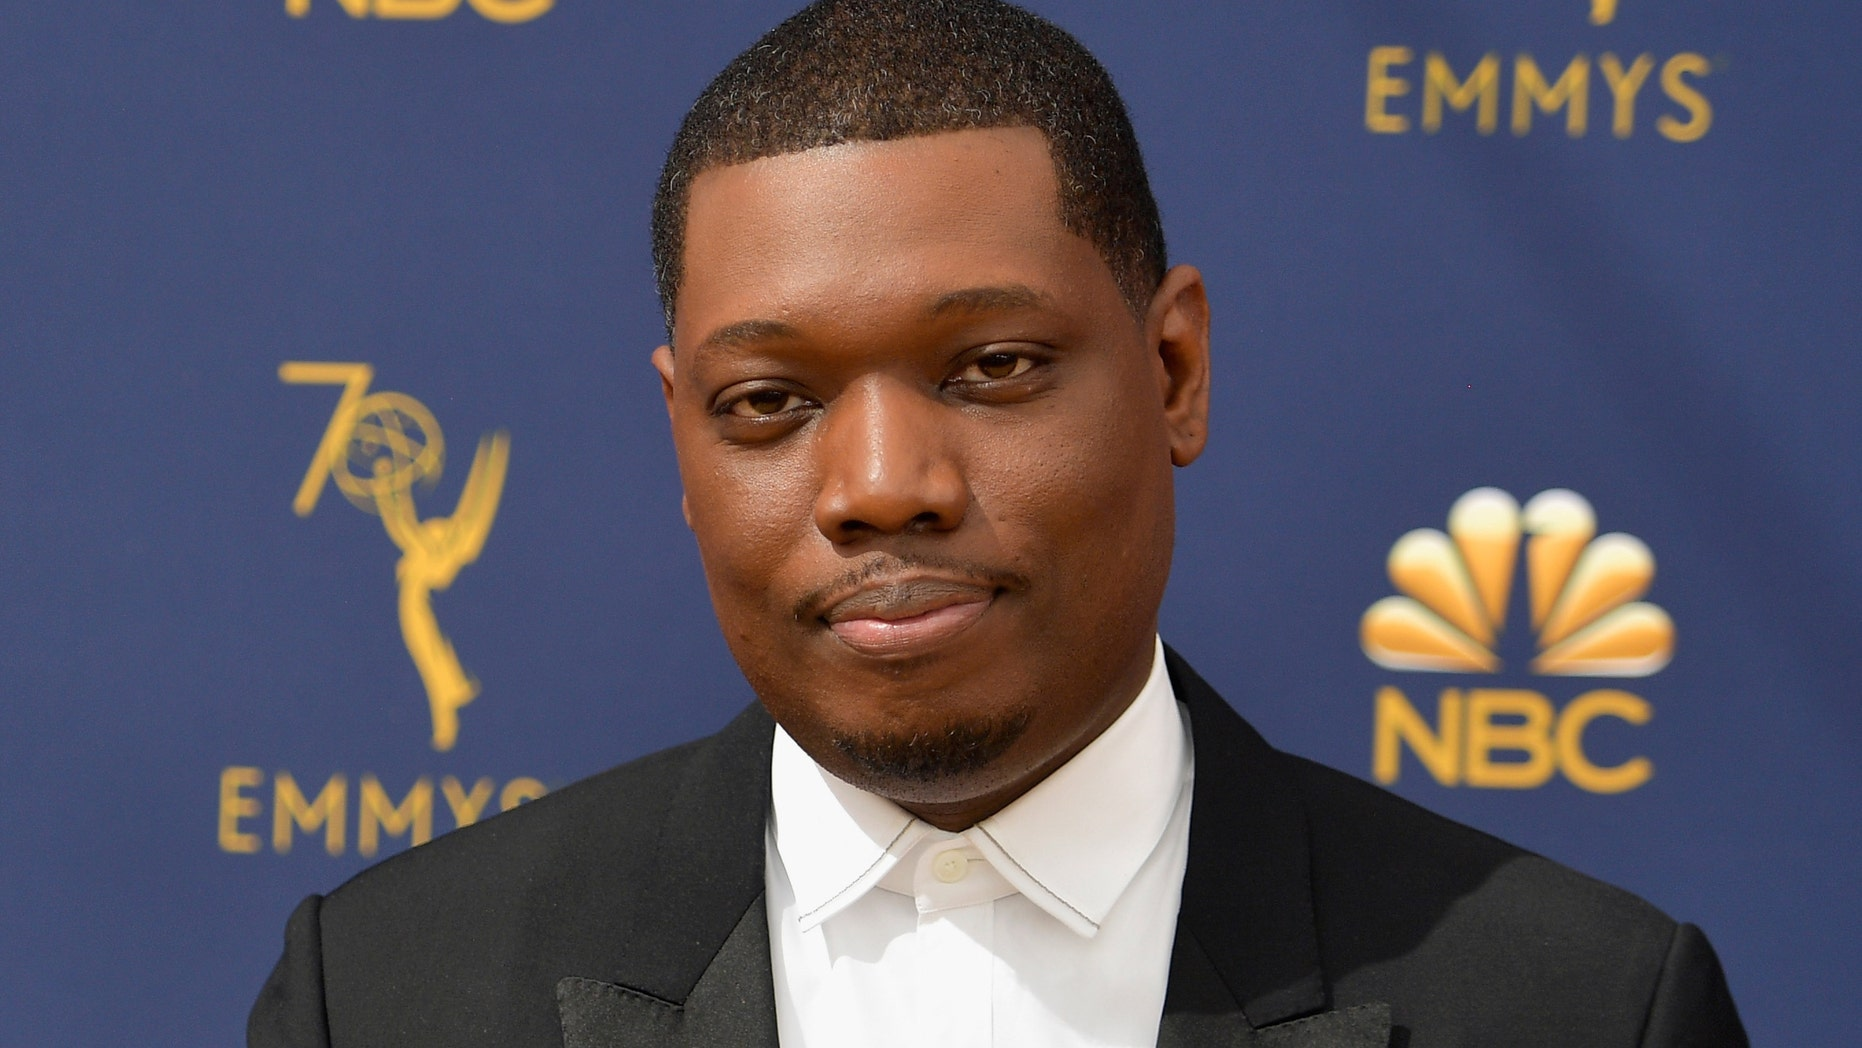 'SNL's' Michael Che, NBC accused of 'antisemitic trope' in 'Weekend Update' segment: 'Retract and apologize'